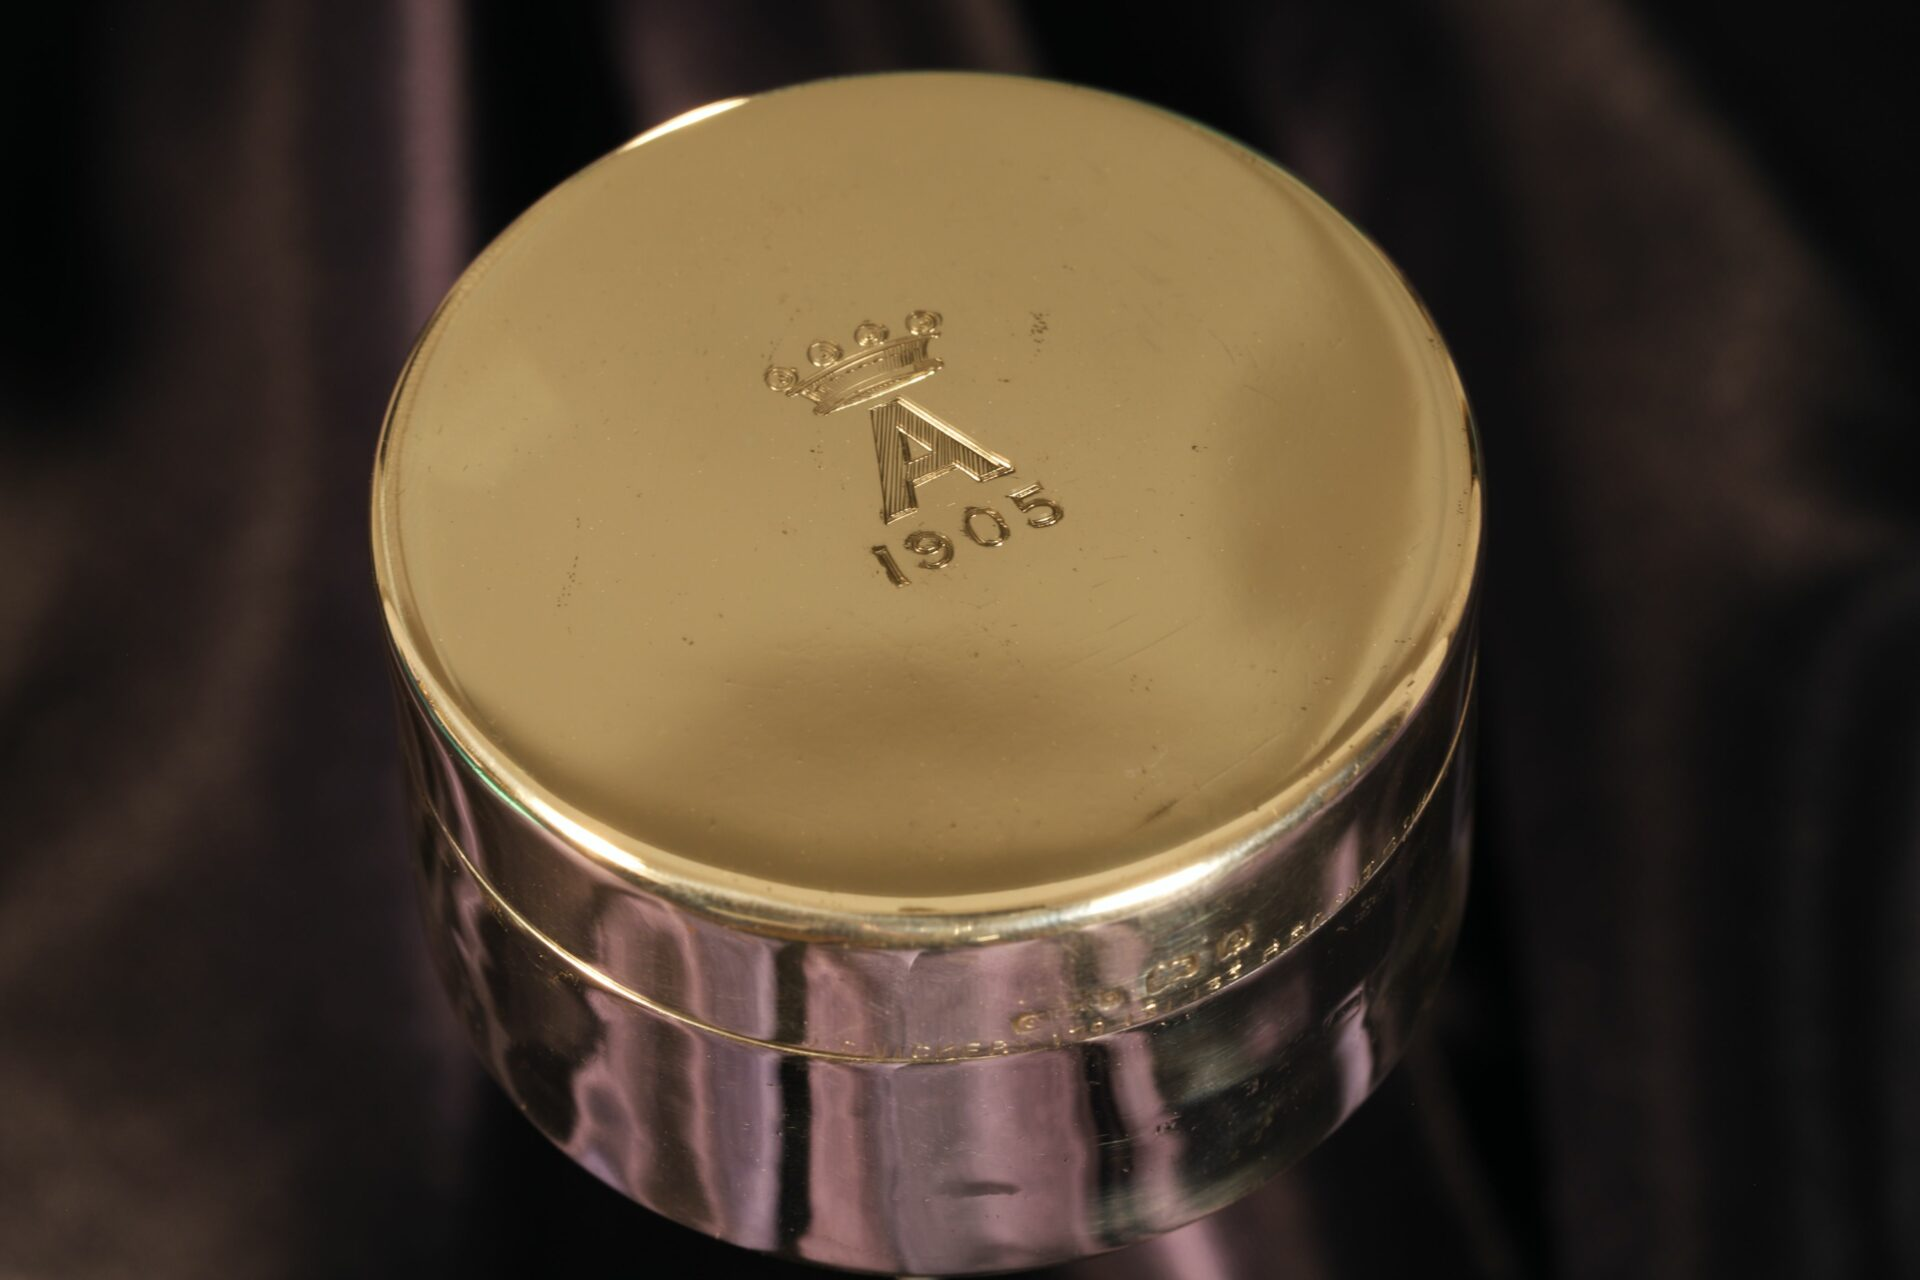 Image of lid of Silver Travel Barometer by Gourdel Vales c1900 showing monogram and hallmarks